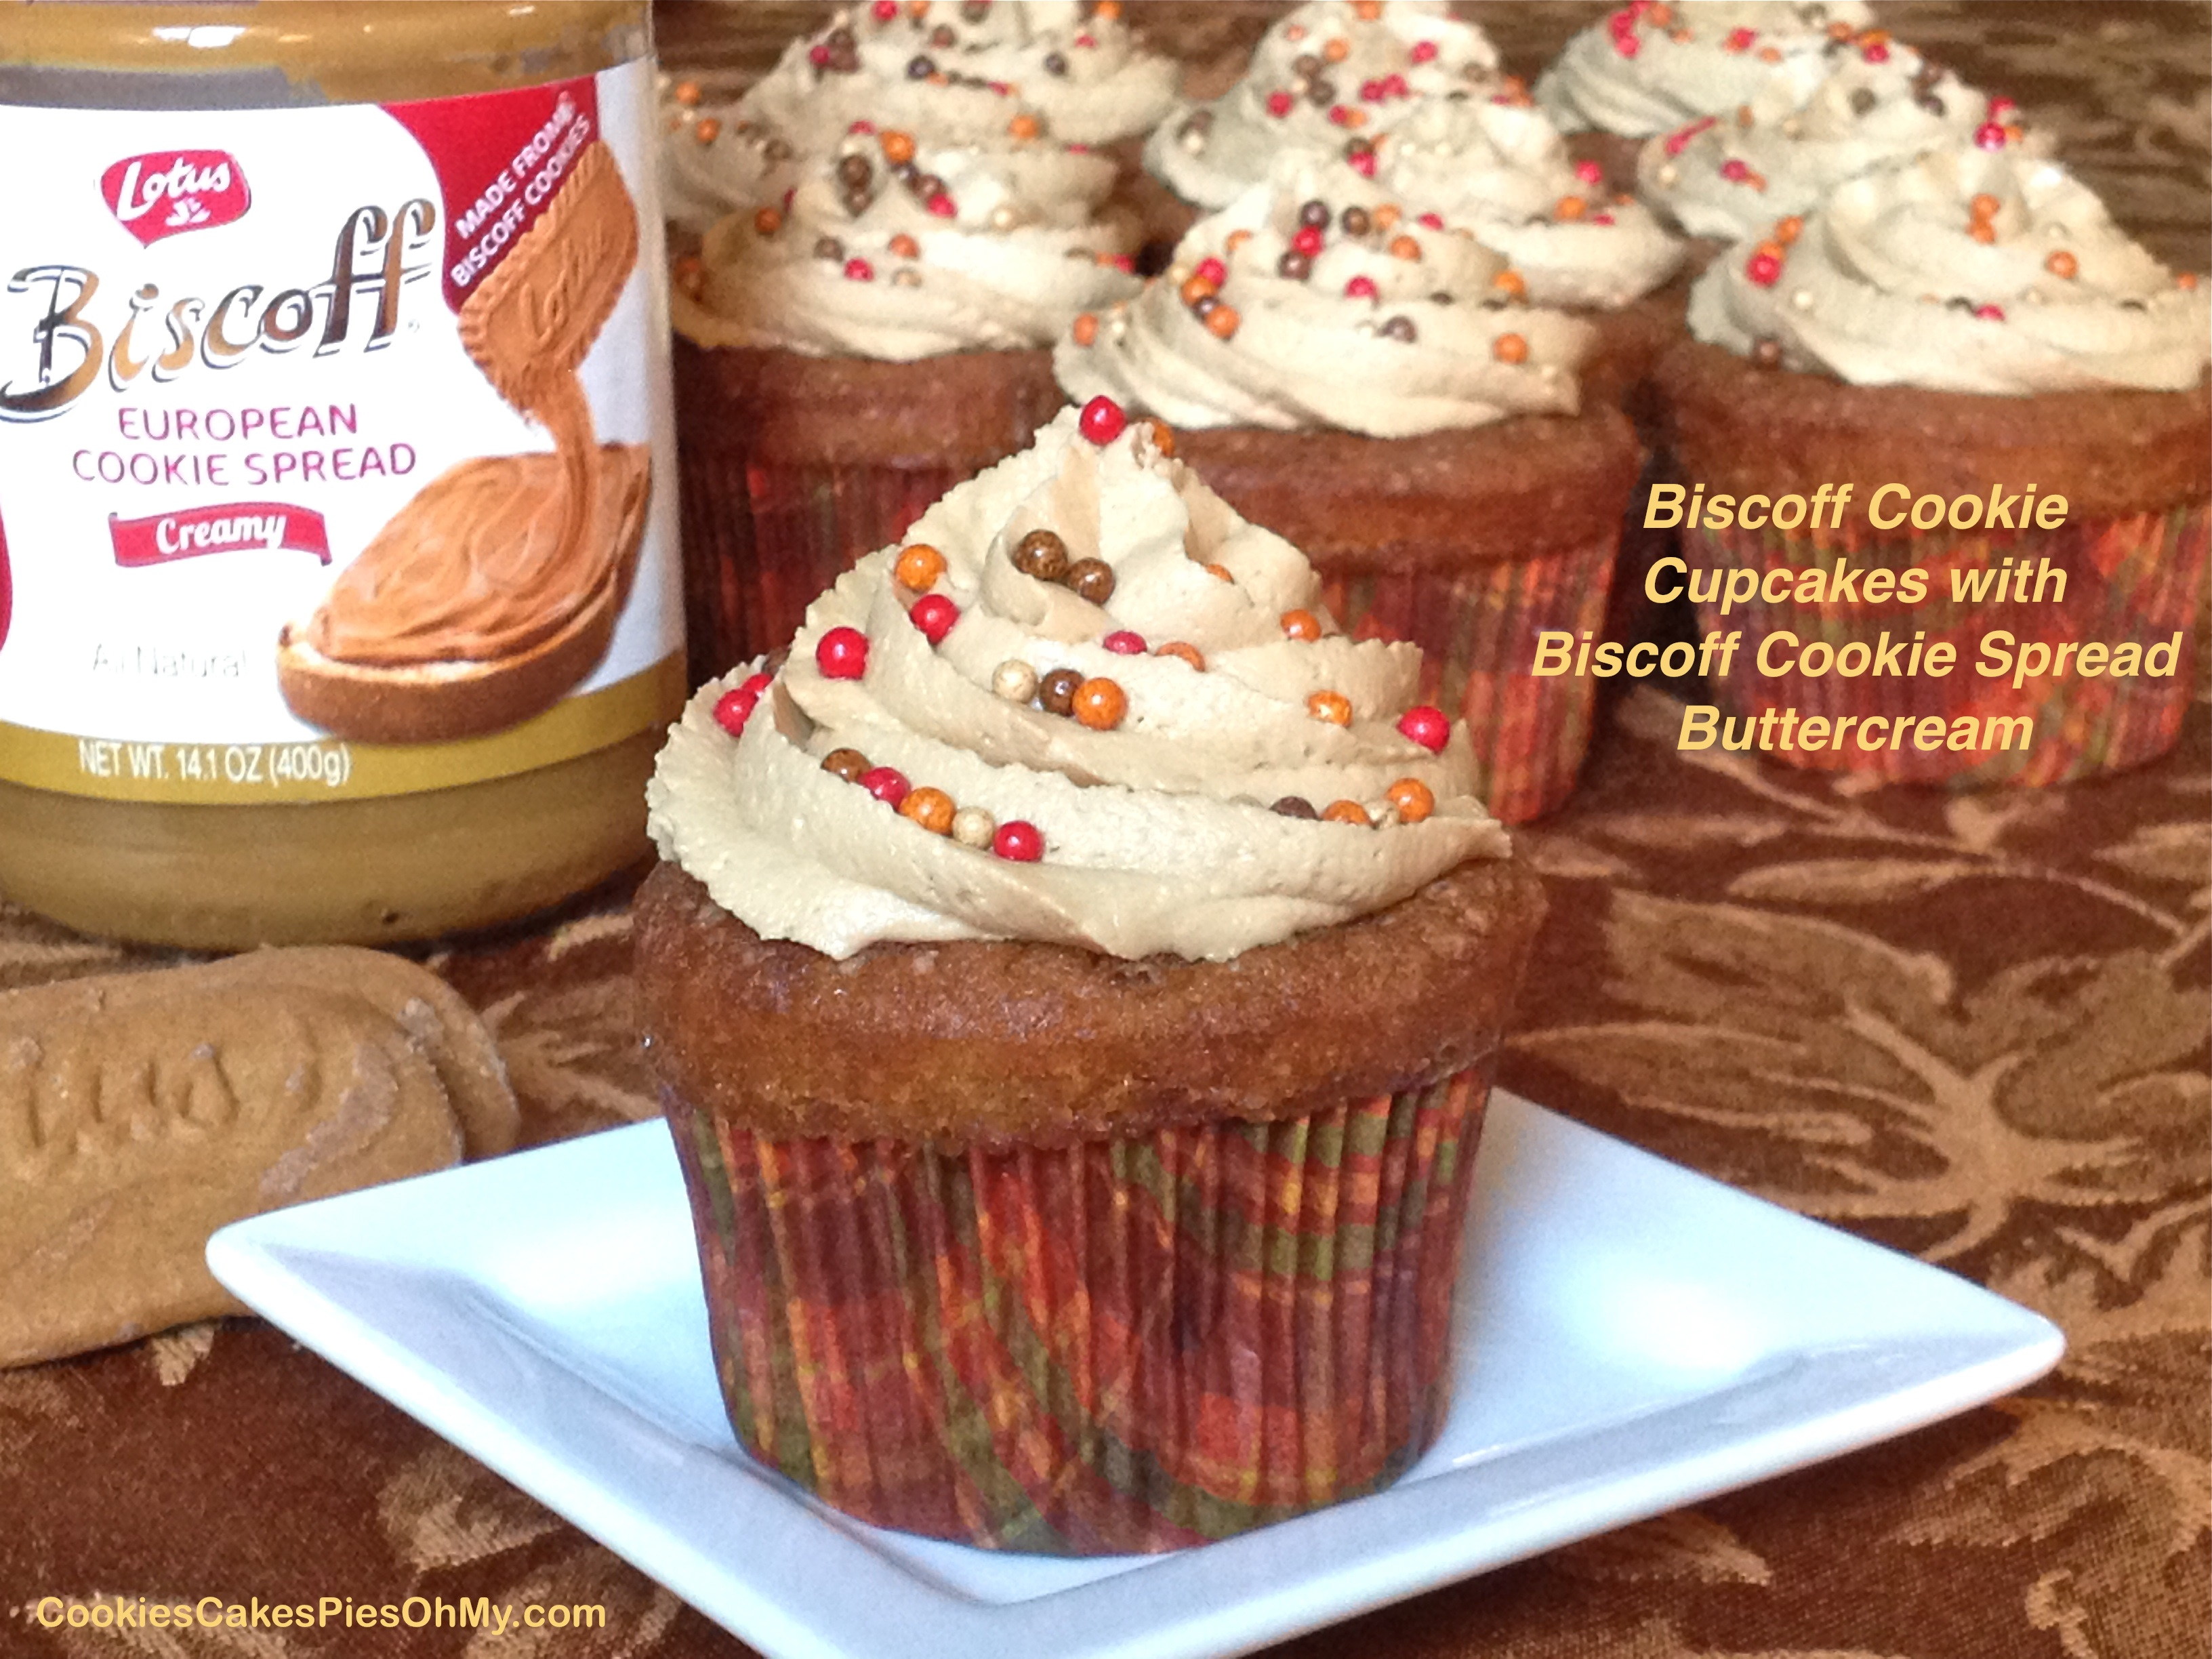 Biscoff Cookie Cupcakes with Biscoff Cookie Spread Buttercream